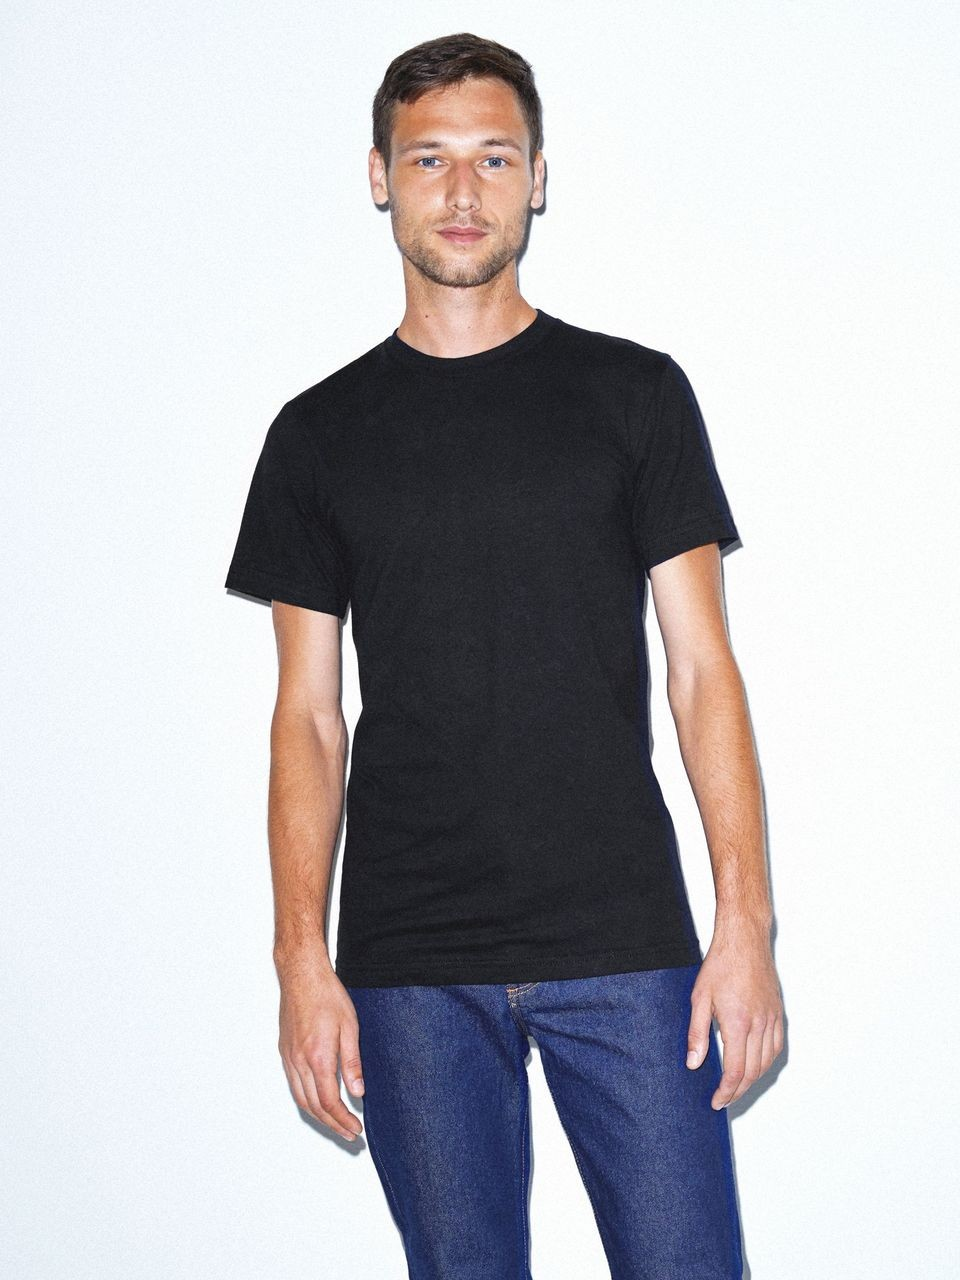 2 Pallets of Adult American Apparel Fine Jersey T-Shirts, 2 Ext. Retail $39,204, Mira Loma, CA